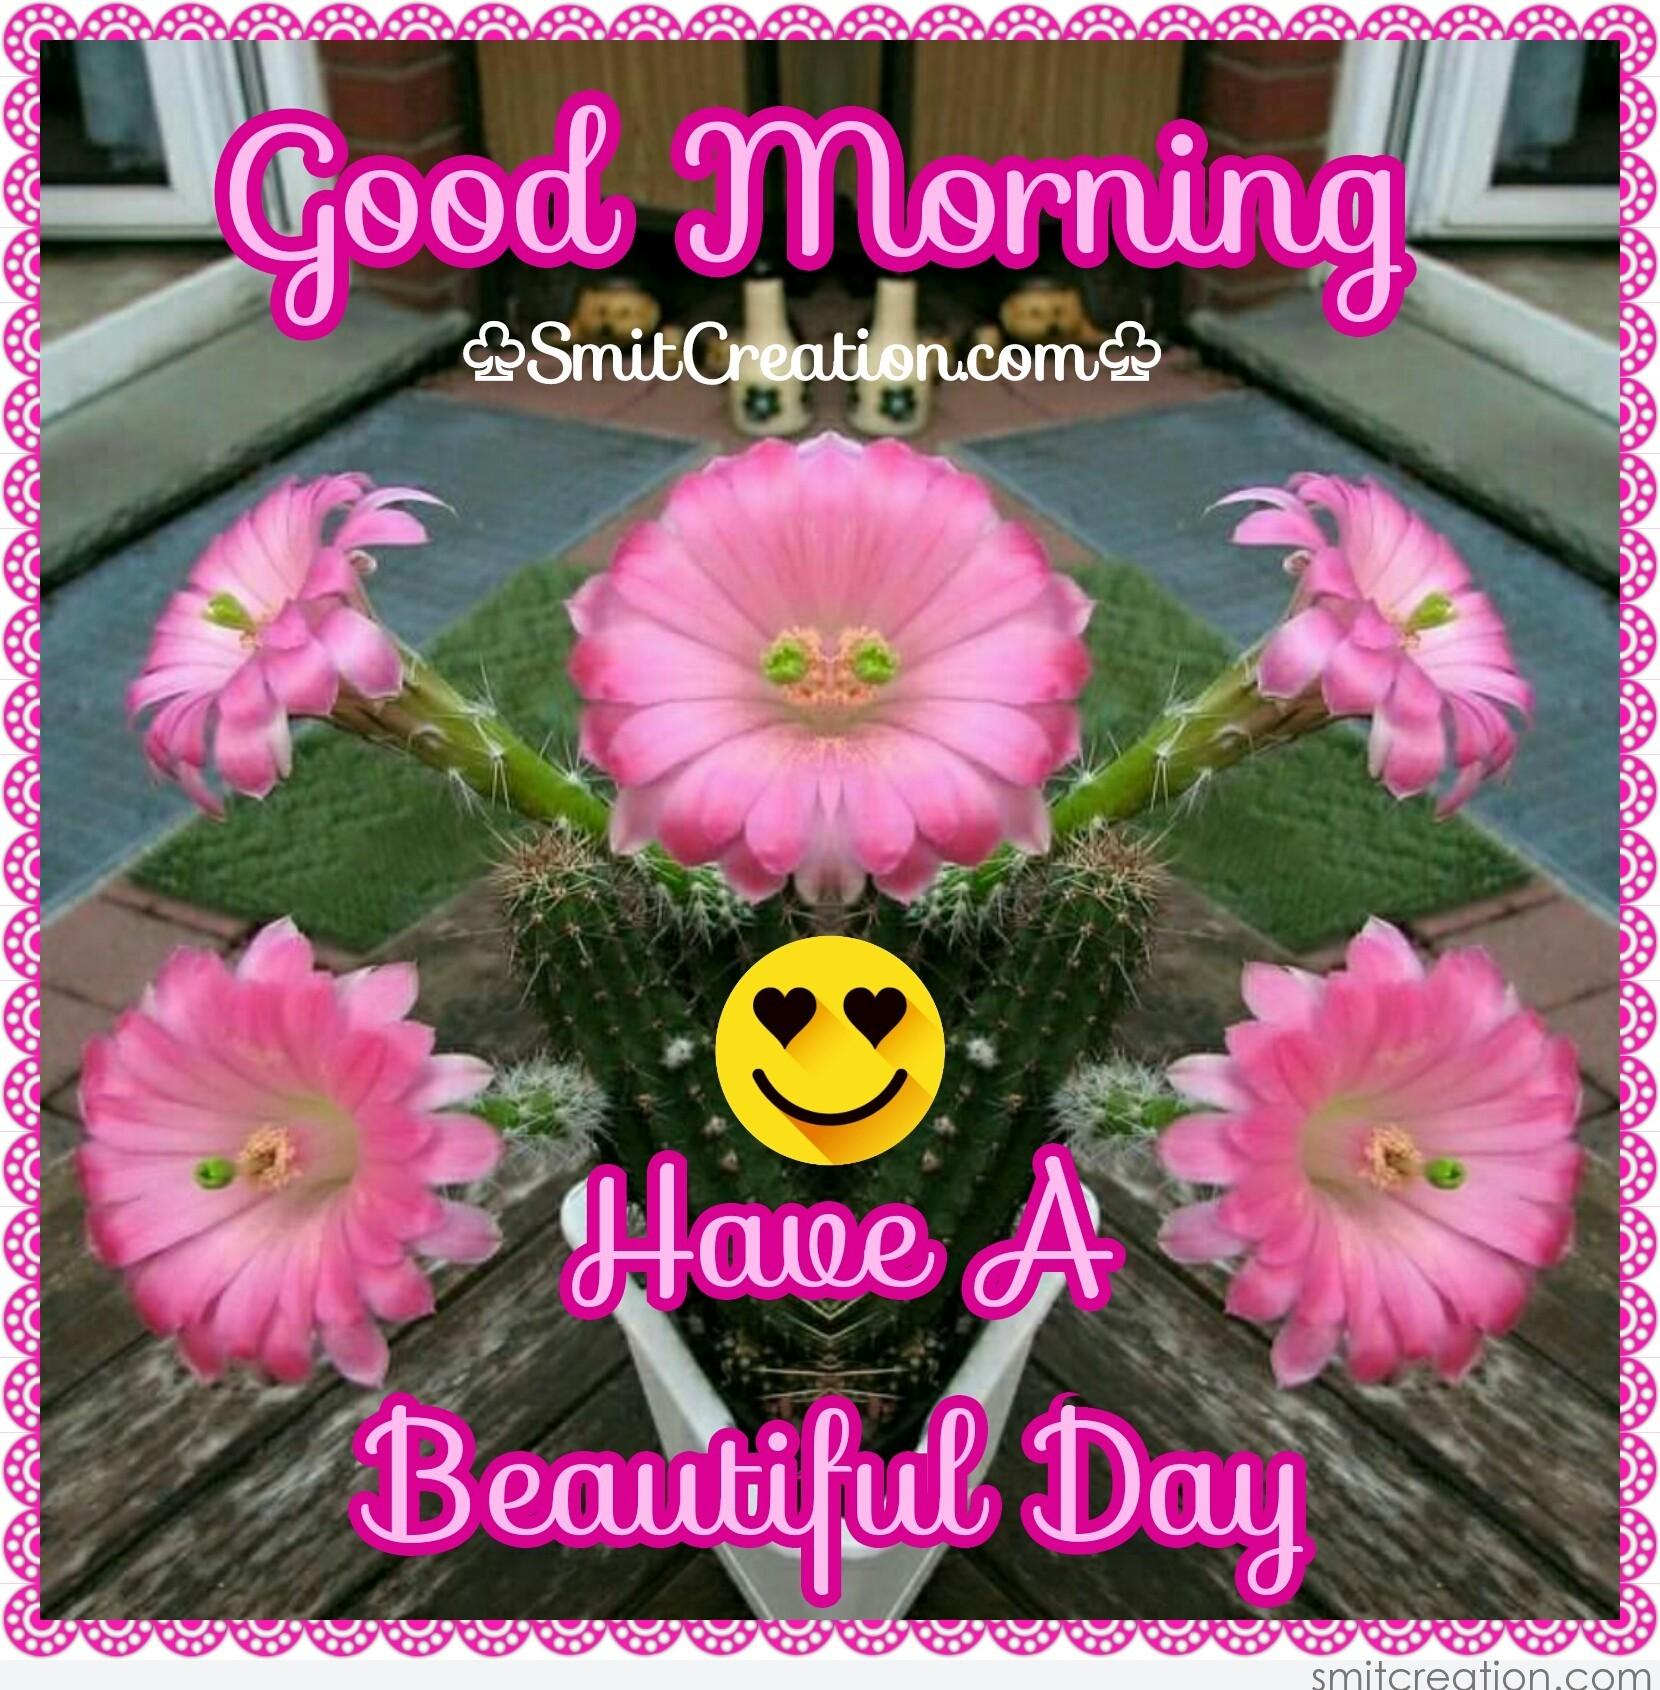 Good Morning Have A Beautiful Day Smitcreationcom